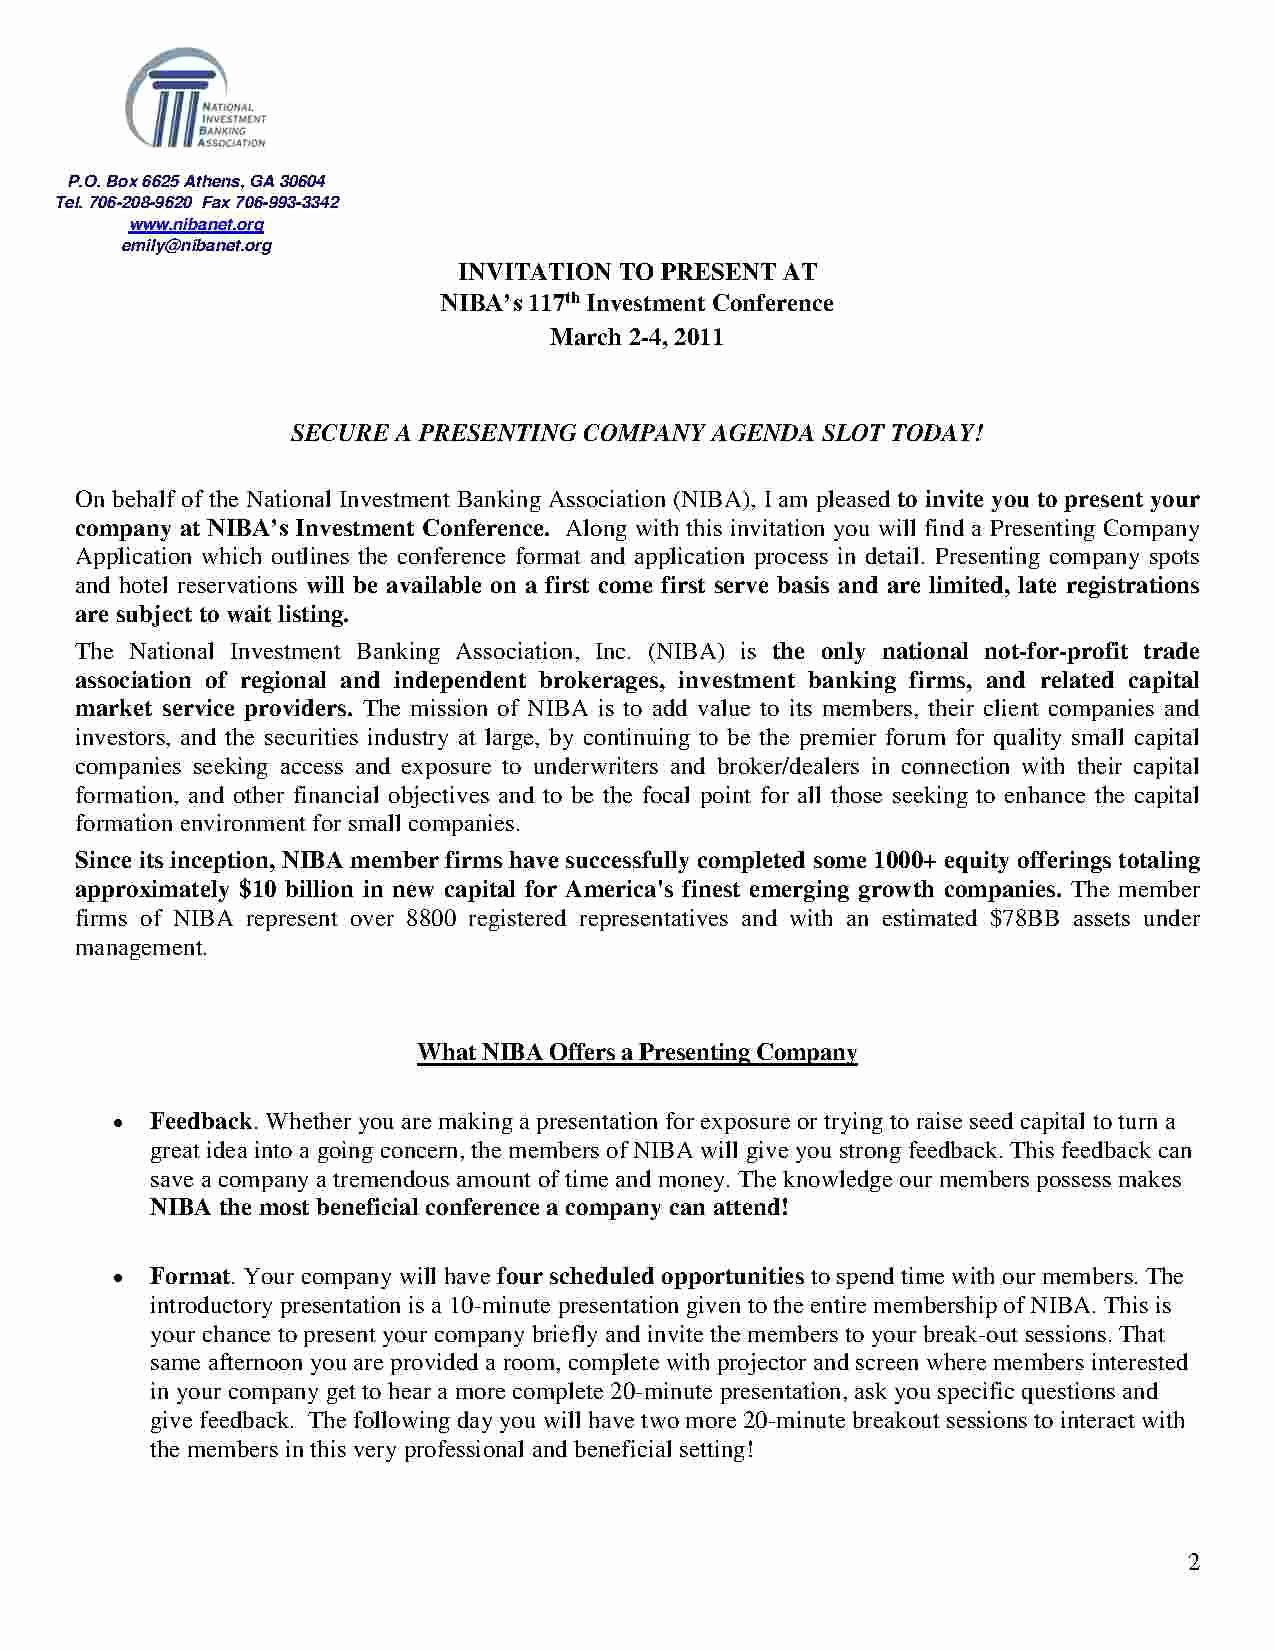 Private Placement Memorandum Template Awesome Download Private Placement Memorandum Style 3 Template for